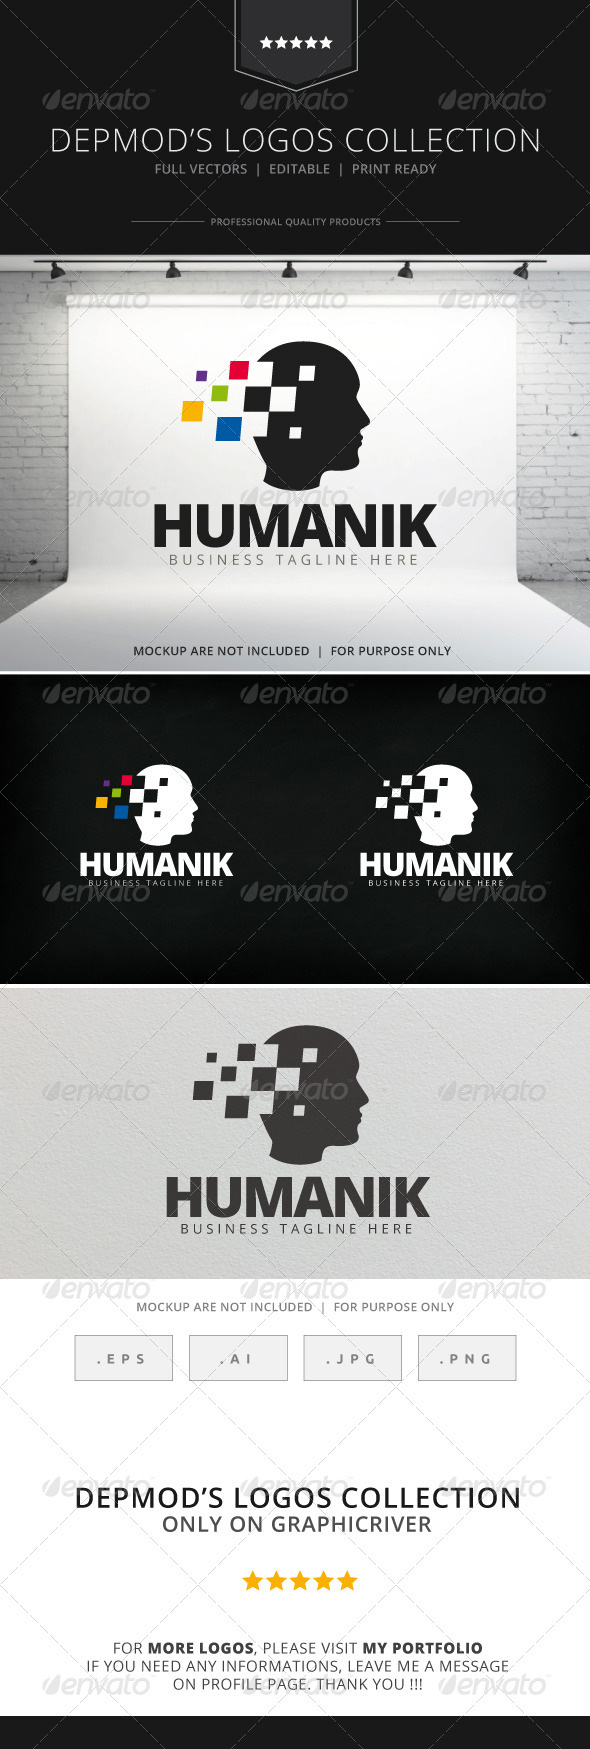 GraphicRiver Humanik Logo 7819904